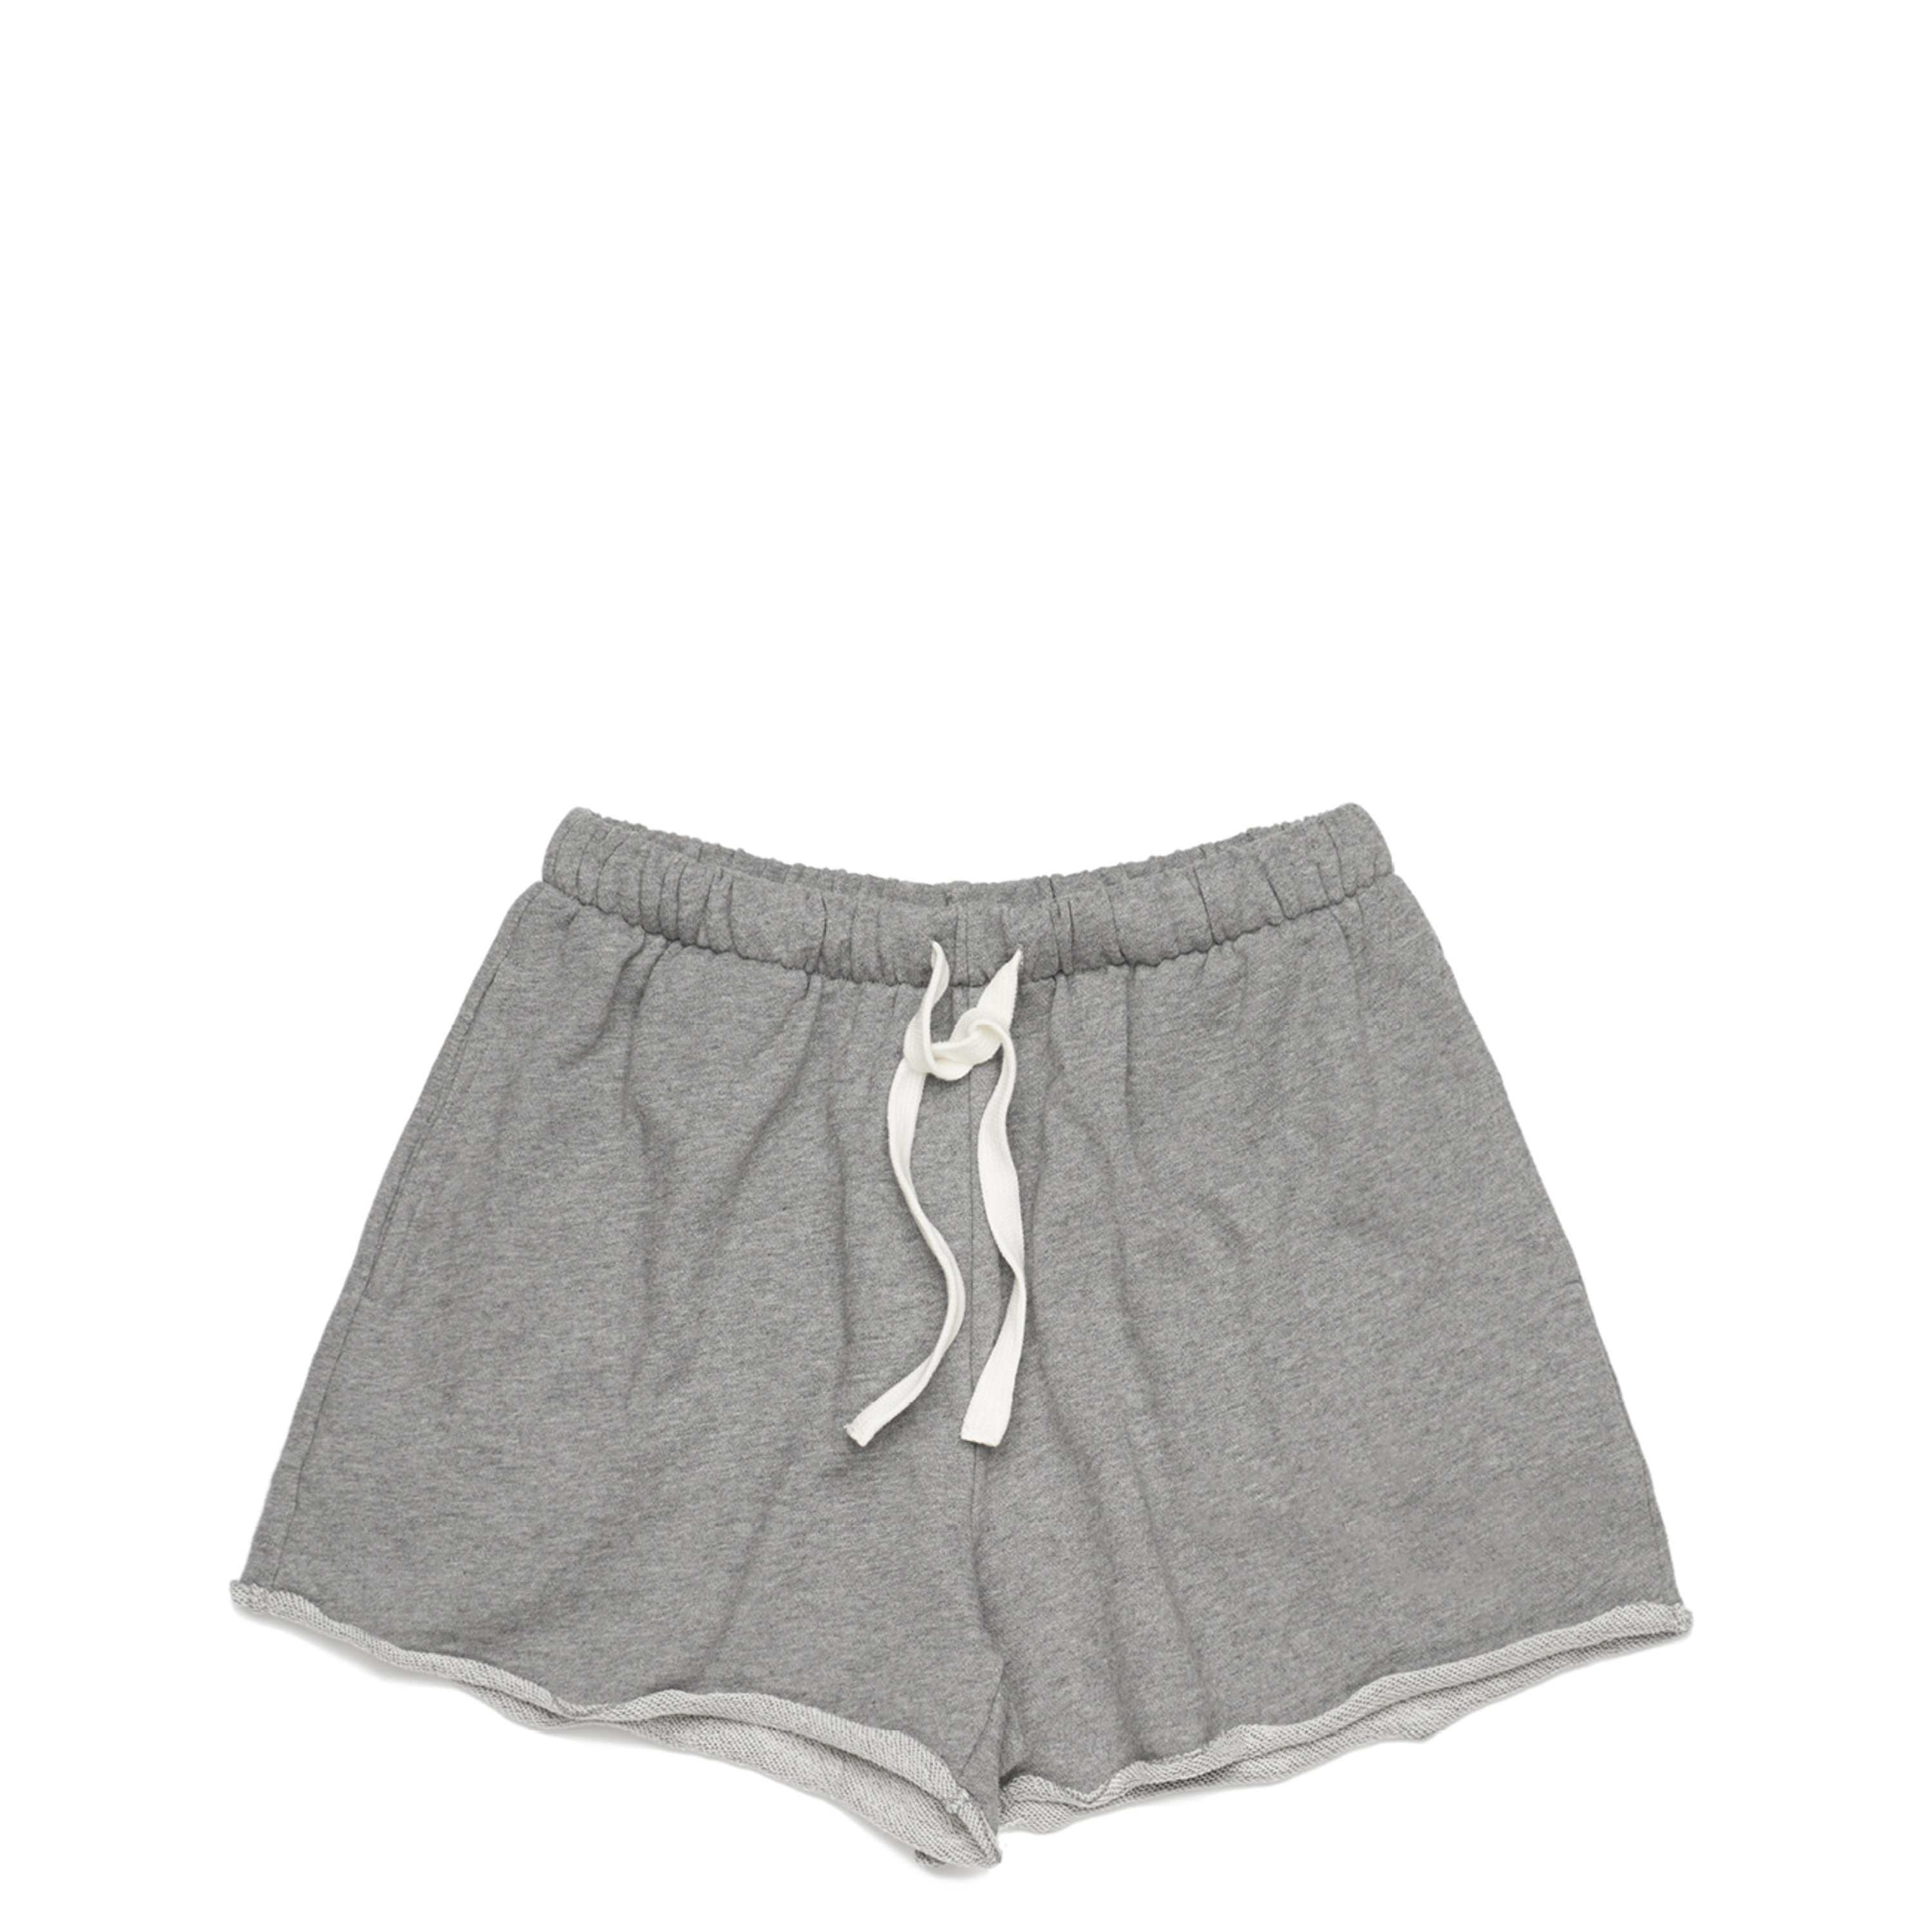 Wo's Perry Track Shorts - 4039